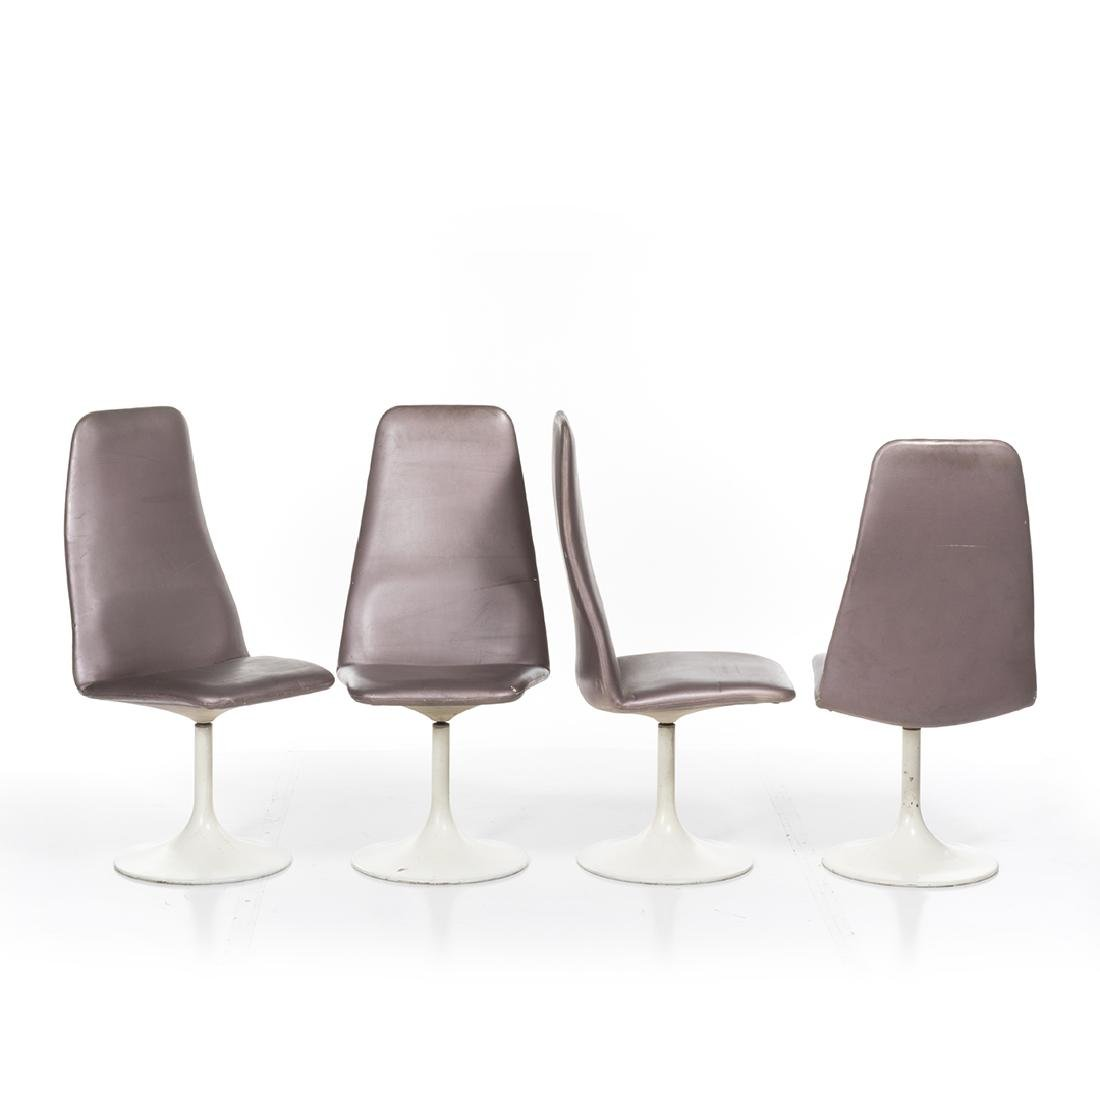 Borje Johansson Dining Chairs (6) - 2